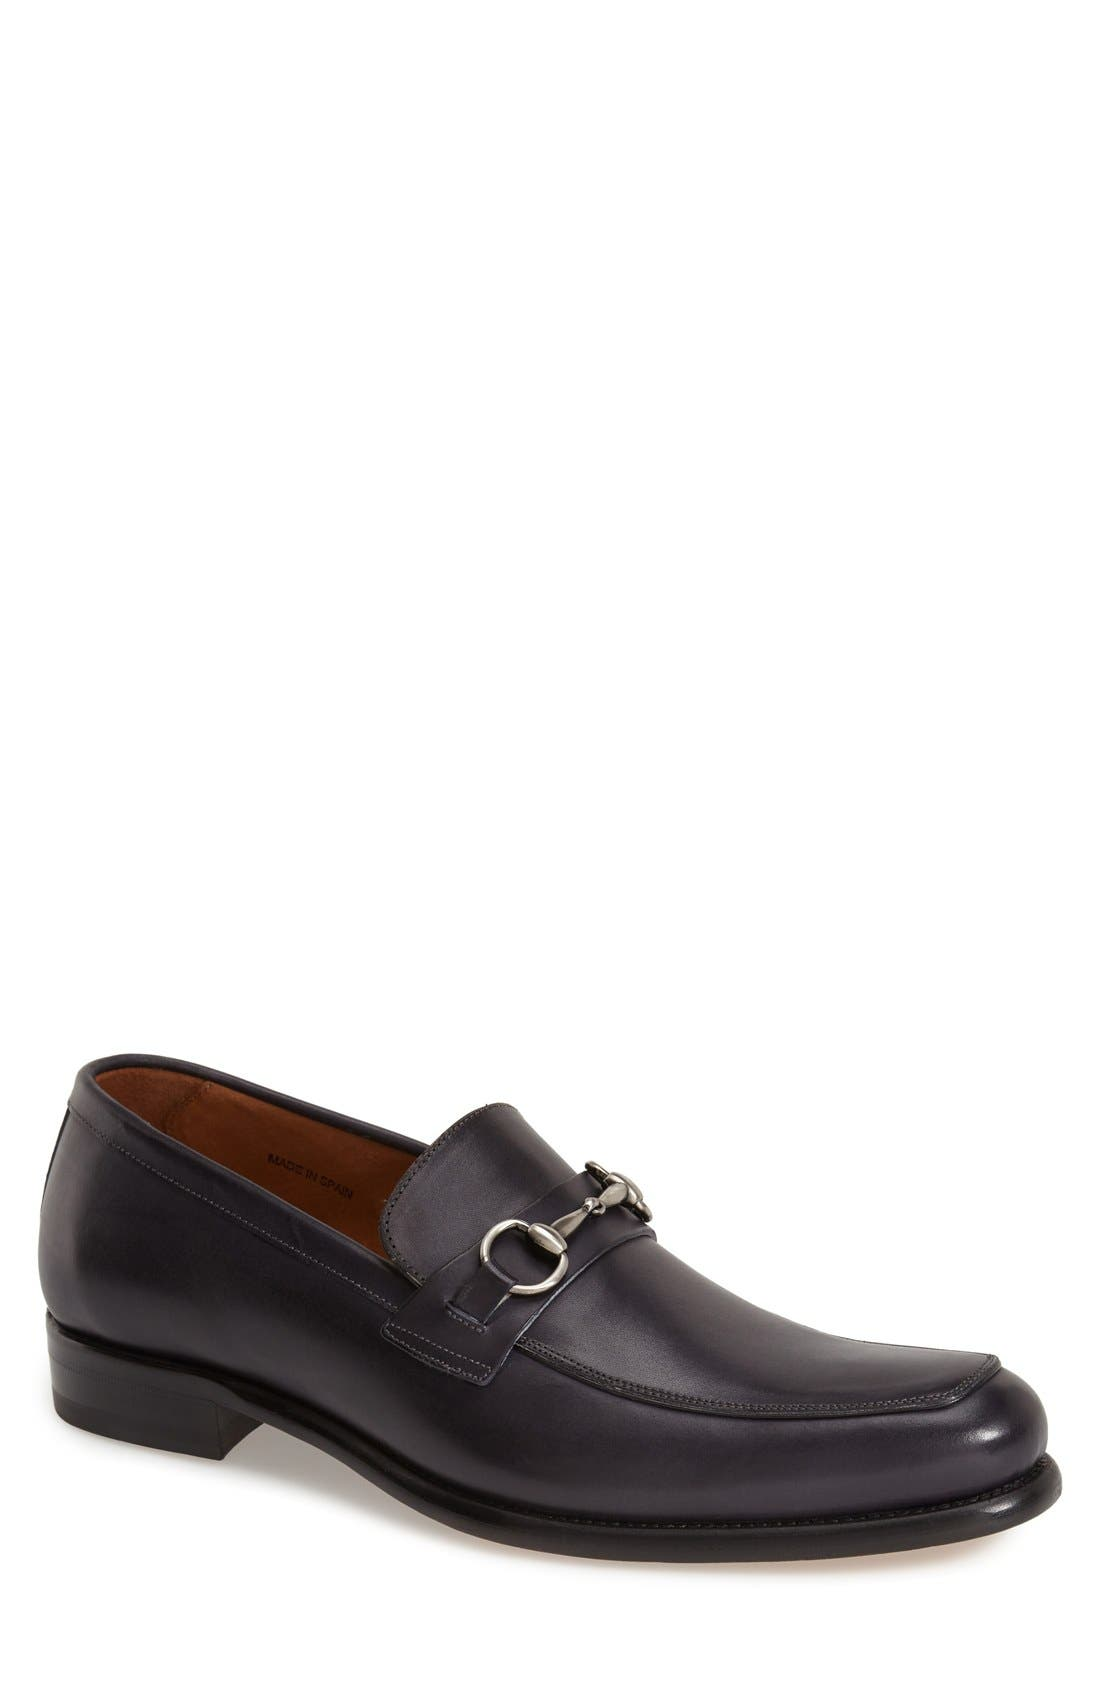 Mezlan Men's 'Worcester' Bit Loafer j7xbV6WL